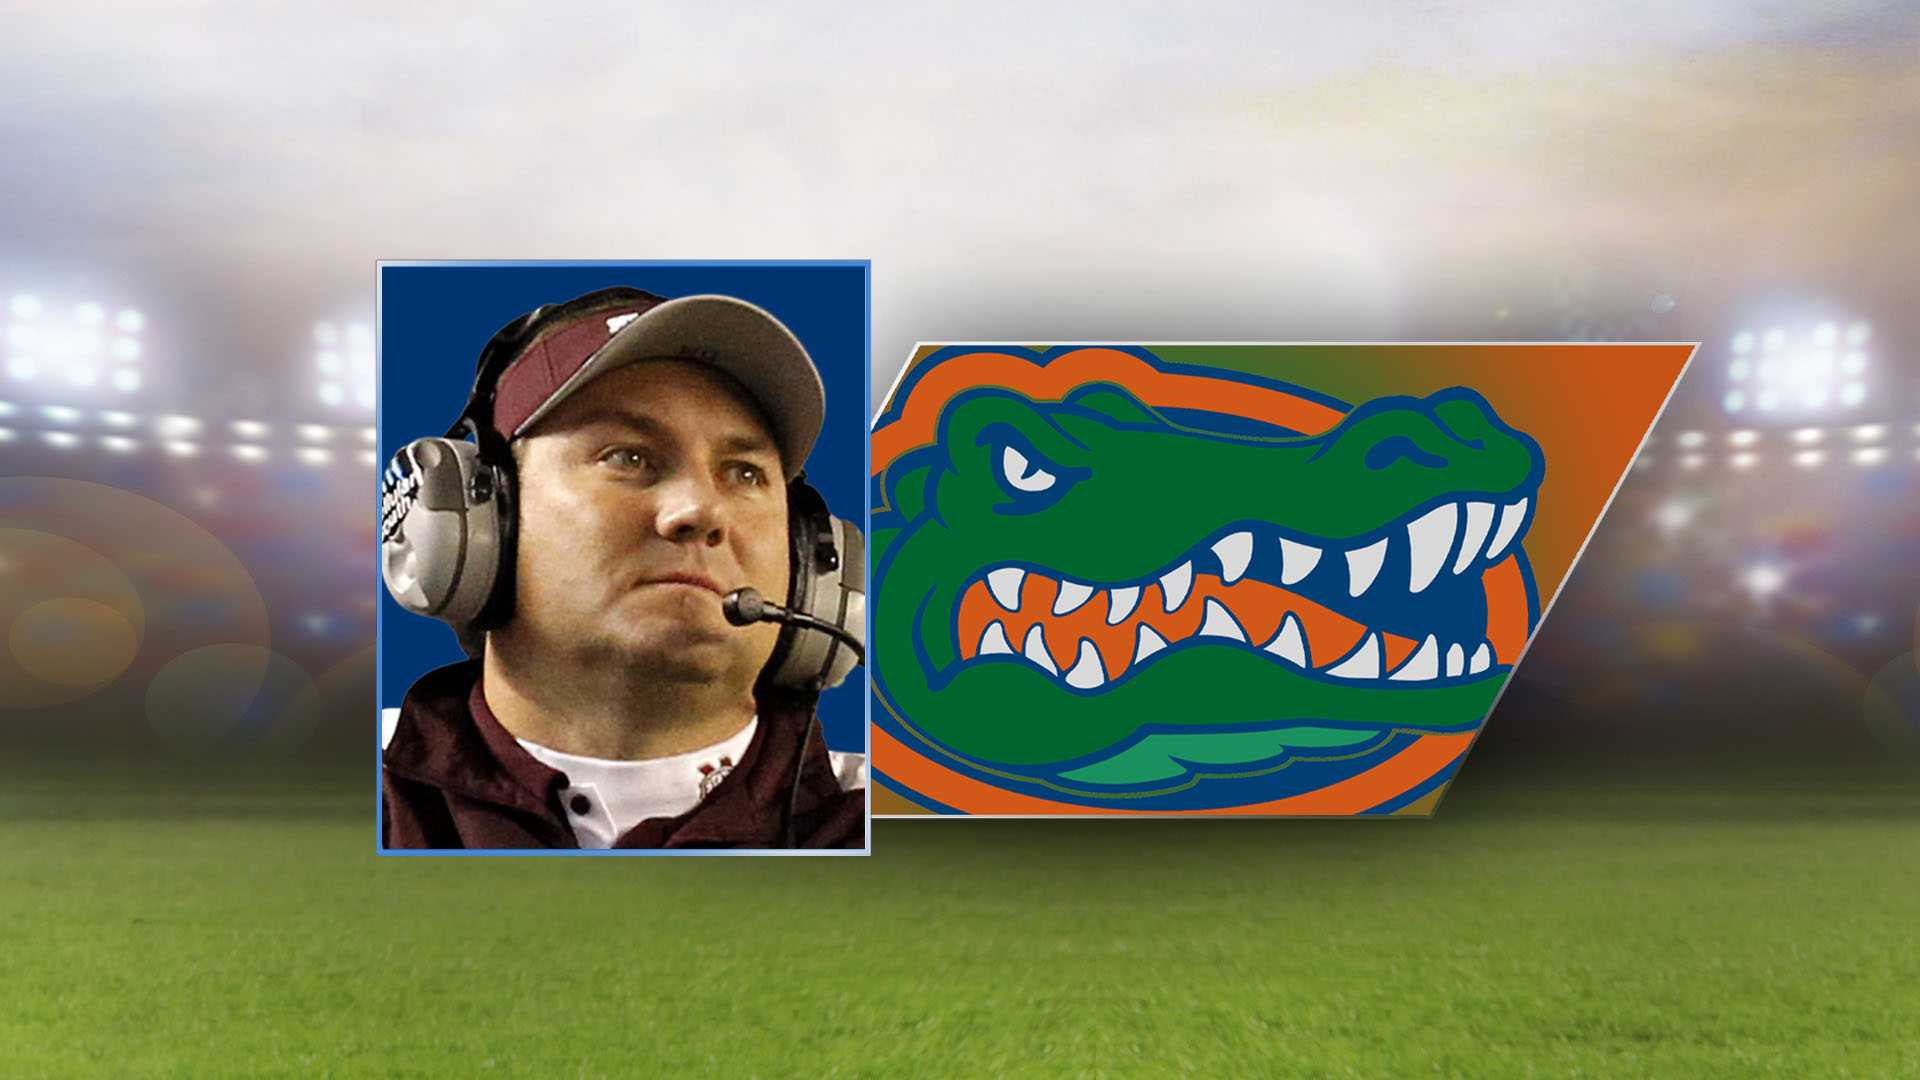 Florida working to hire Dan Mullen away from Mississippi State, reports say